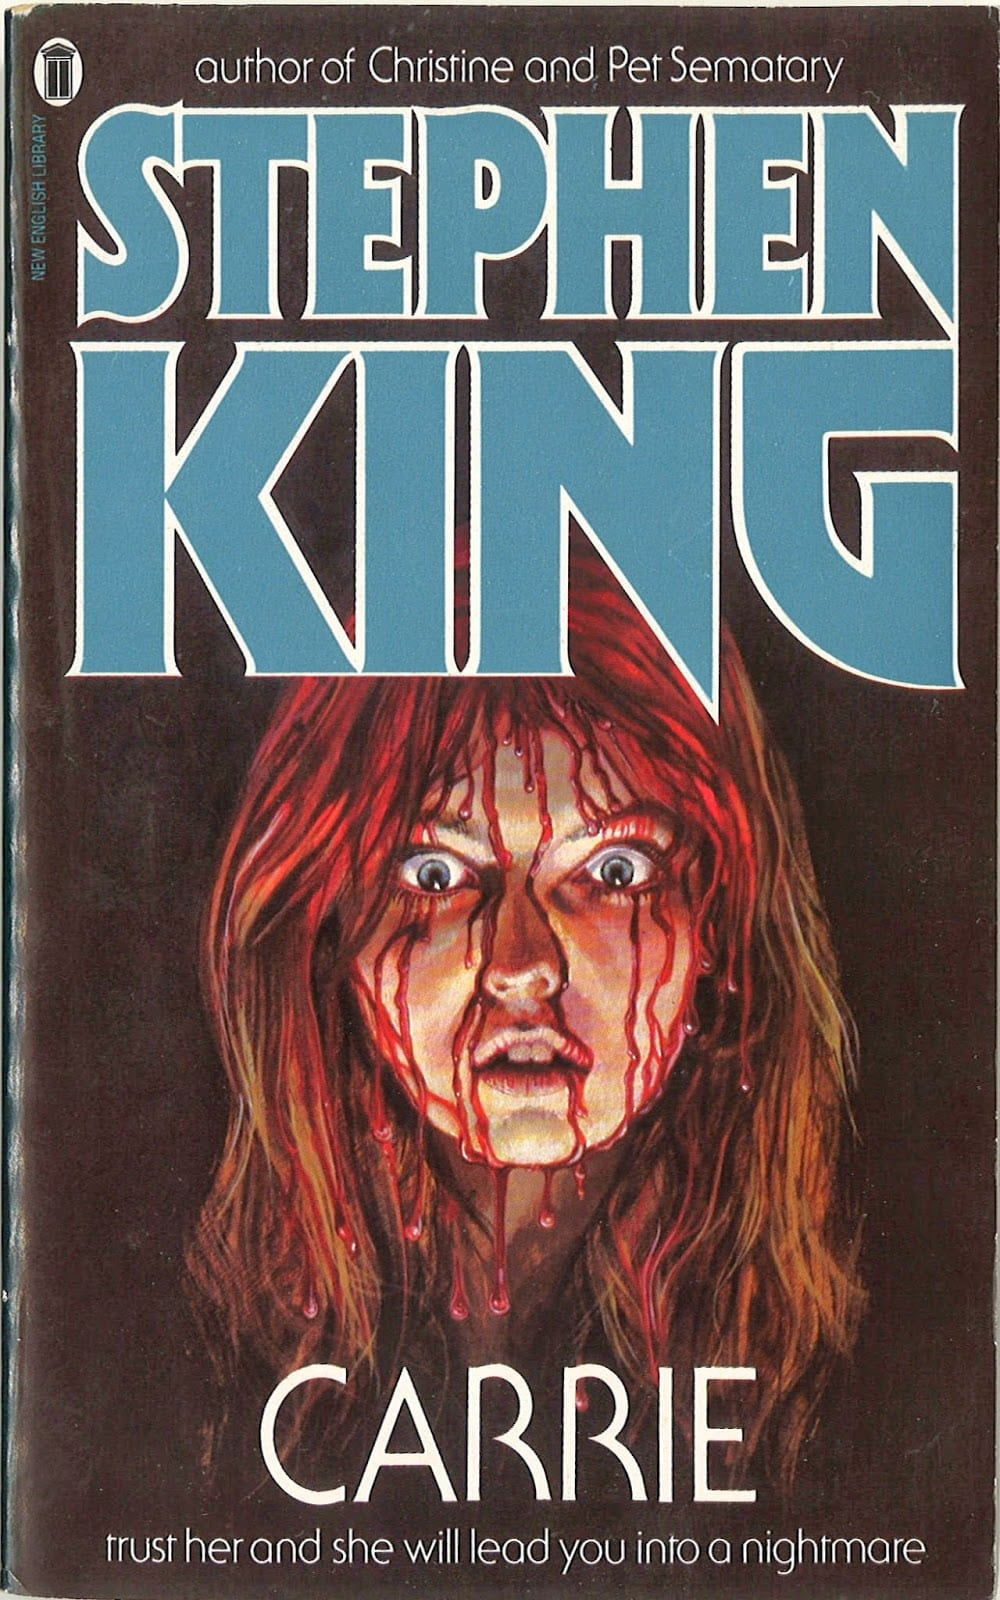 Stephen King's Carrie book cover.